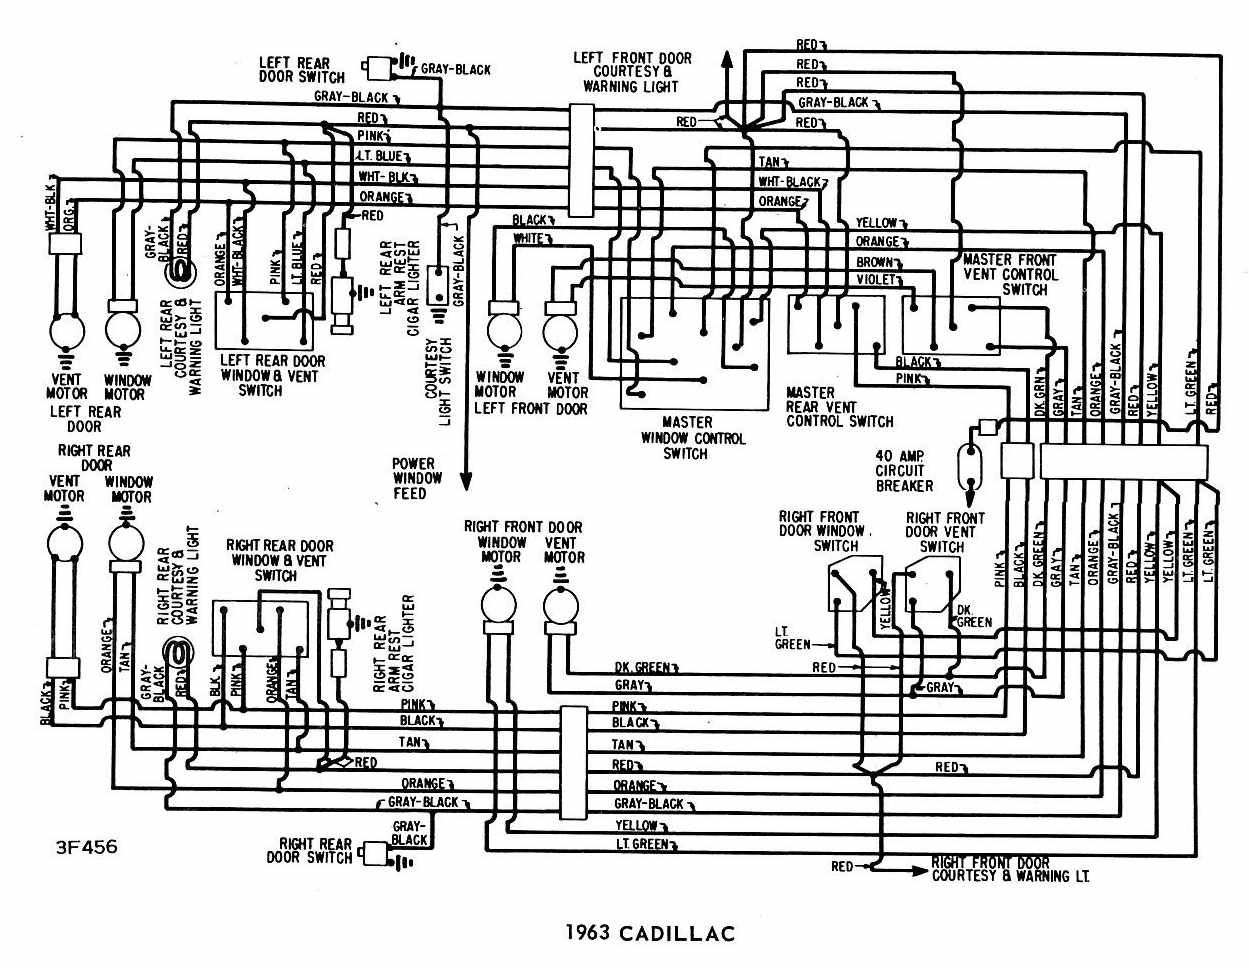 Automotive Electrical Wiring Diagram Pdf Library Car Diagrams Cadillac 1963 Windows For Jaguar Xj6 Free